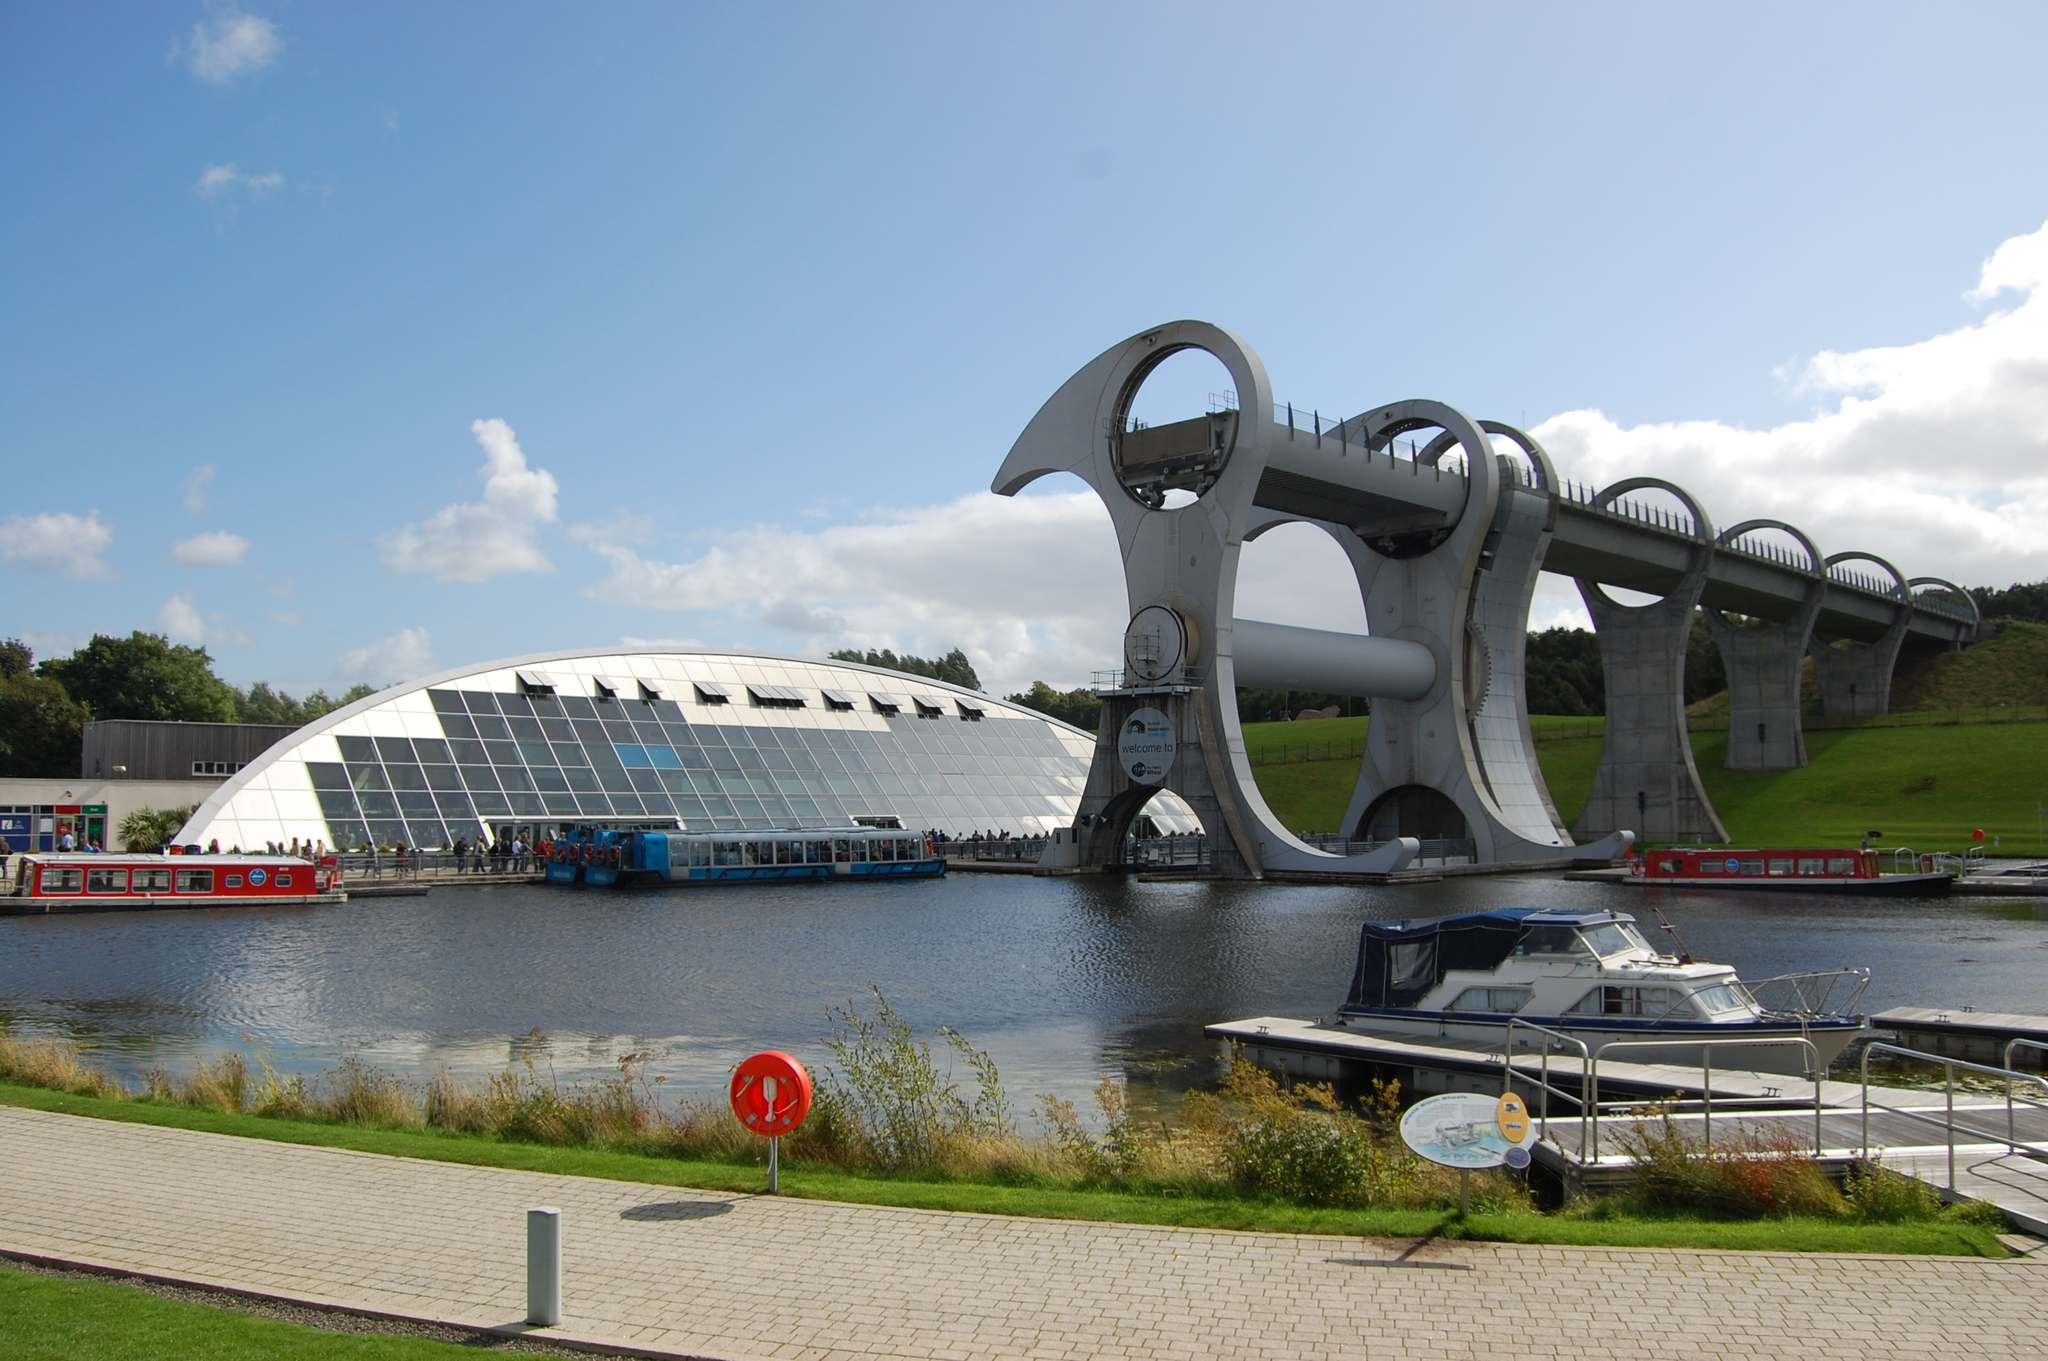 falkirk wheel The Falkirk Wheel   Rotating Boat Lift in Scotland